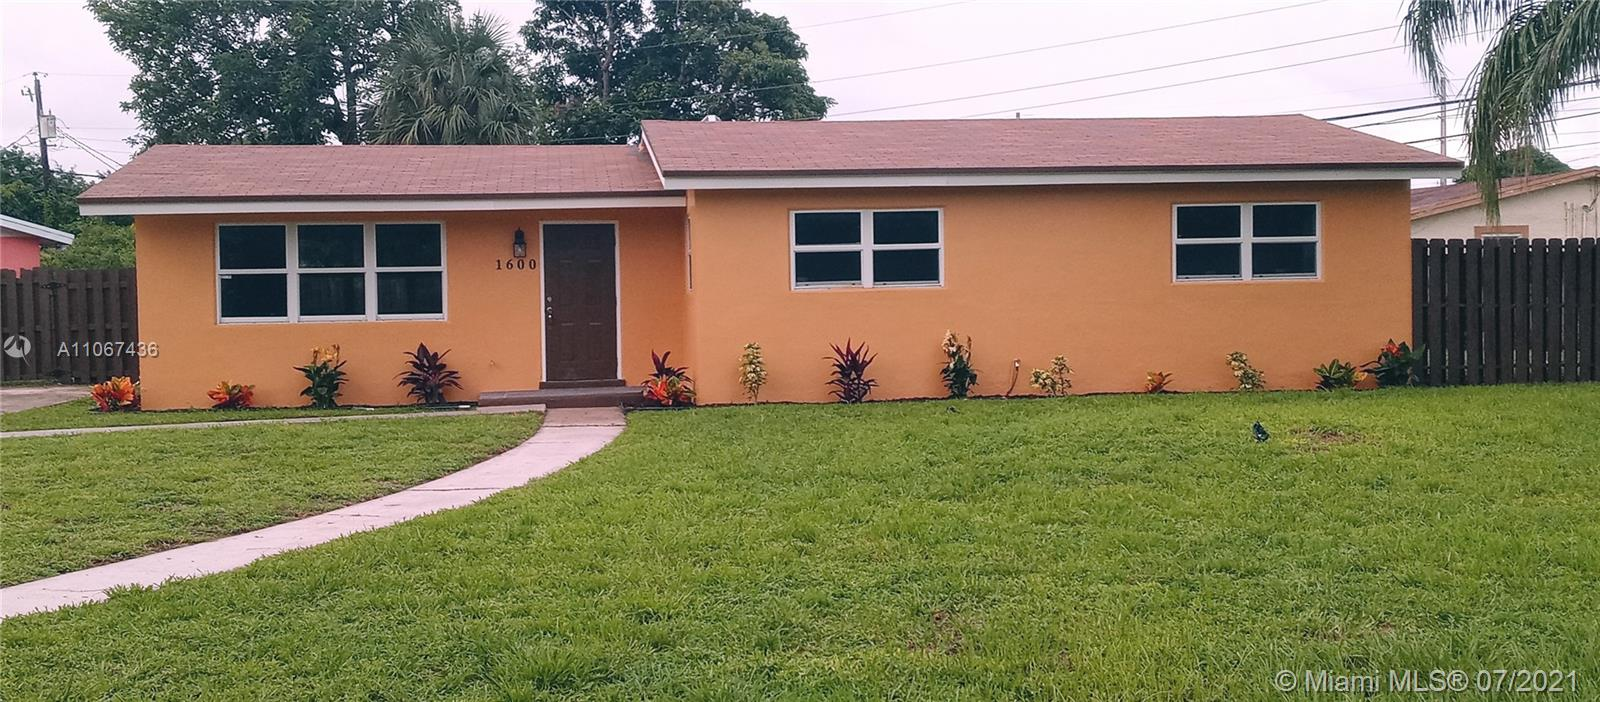 Lauderdale, 1600 NW 11 AVE, Fort Lauderdale, Florida 33311